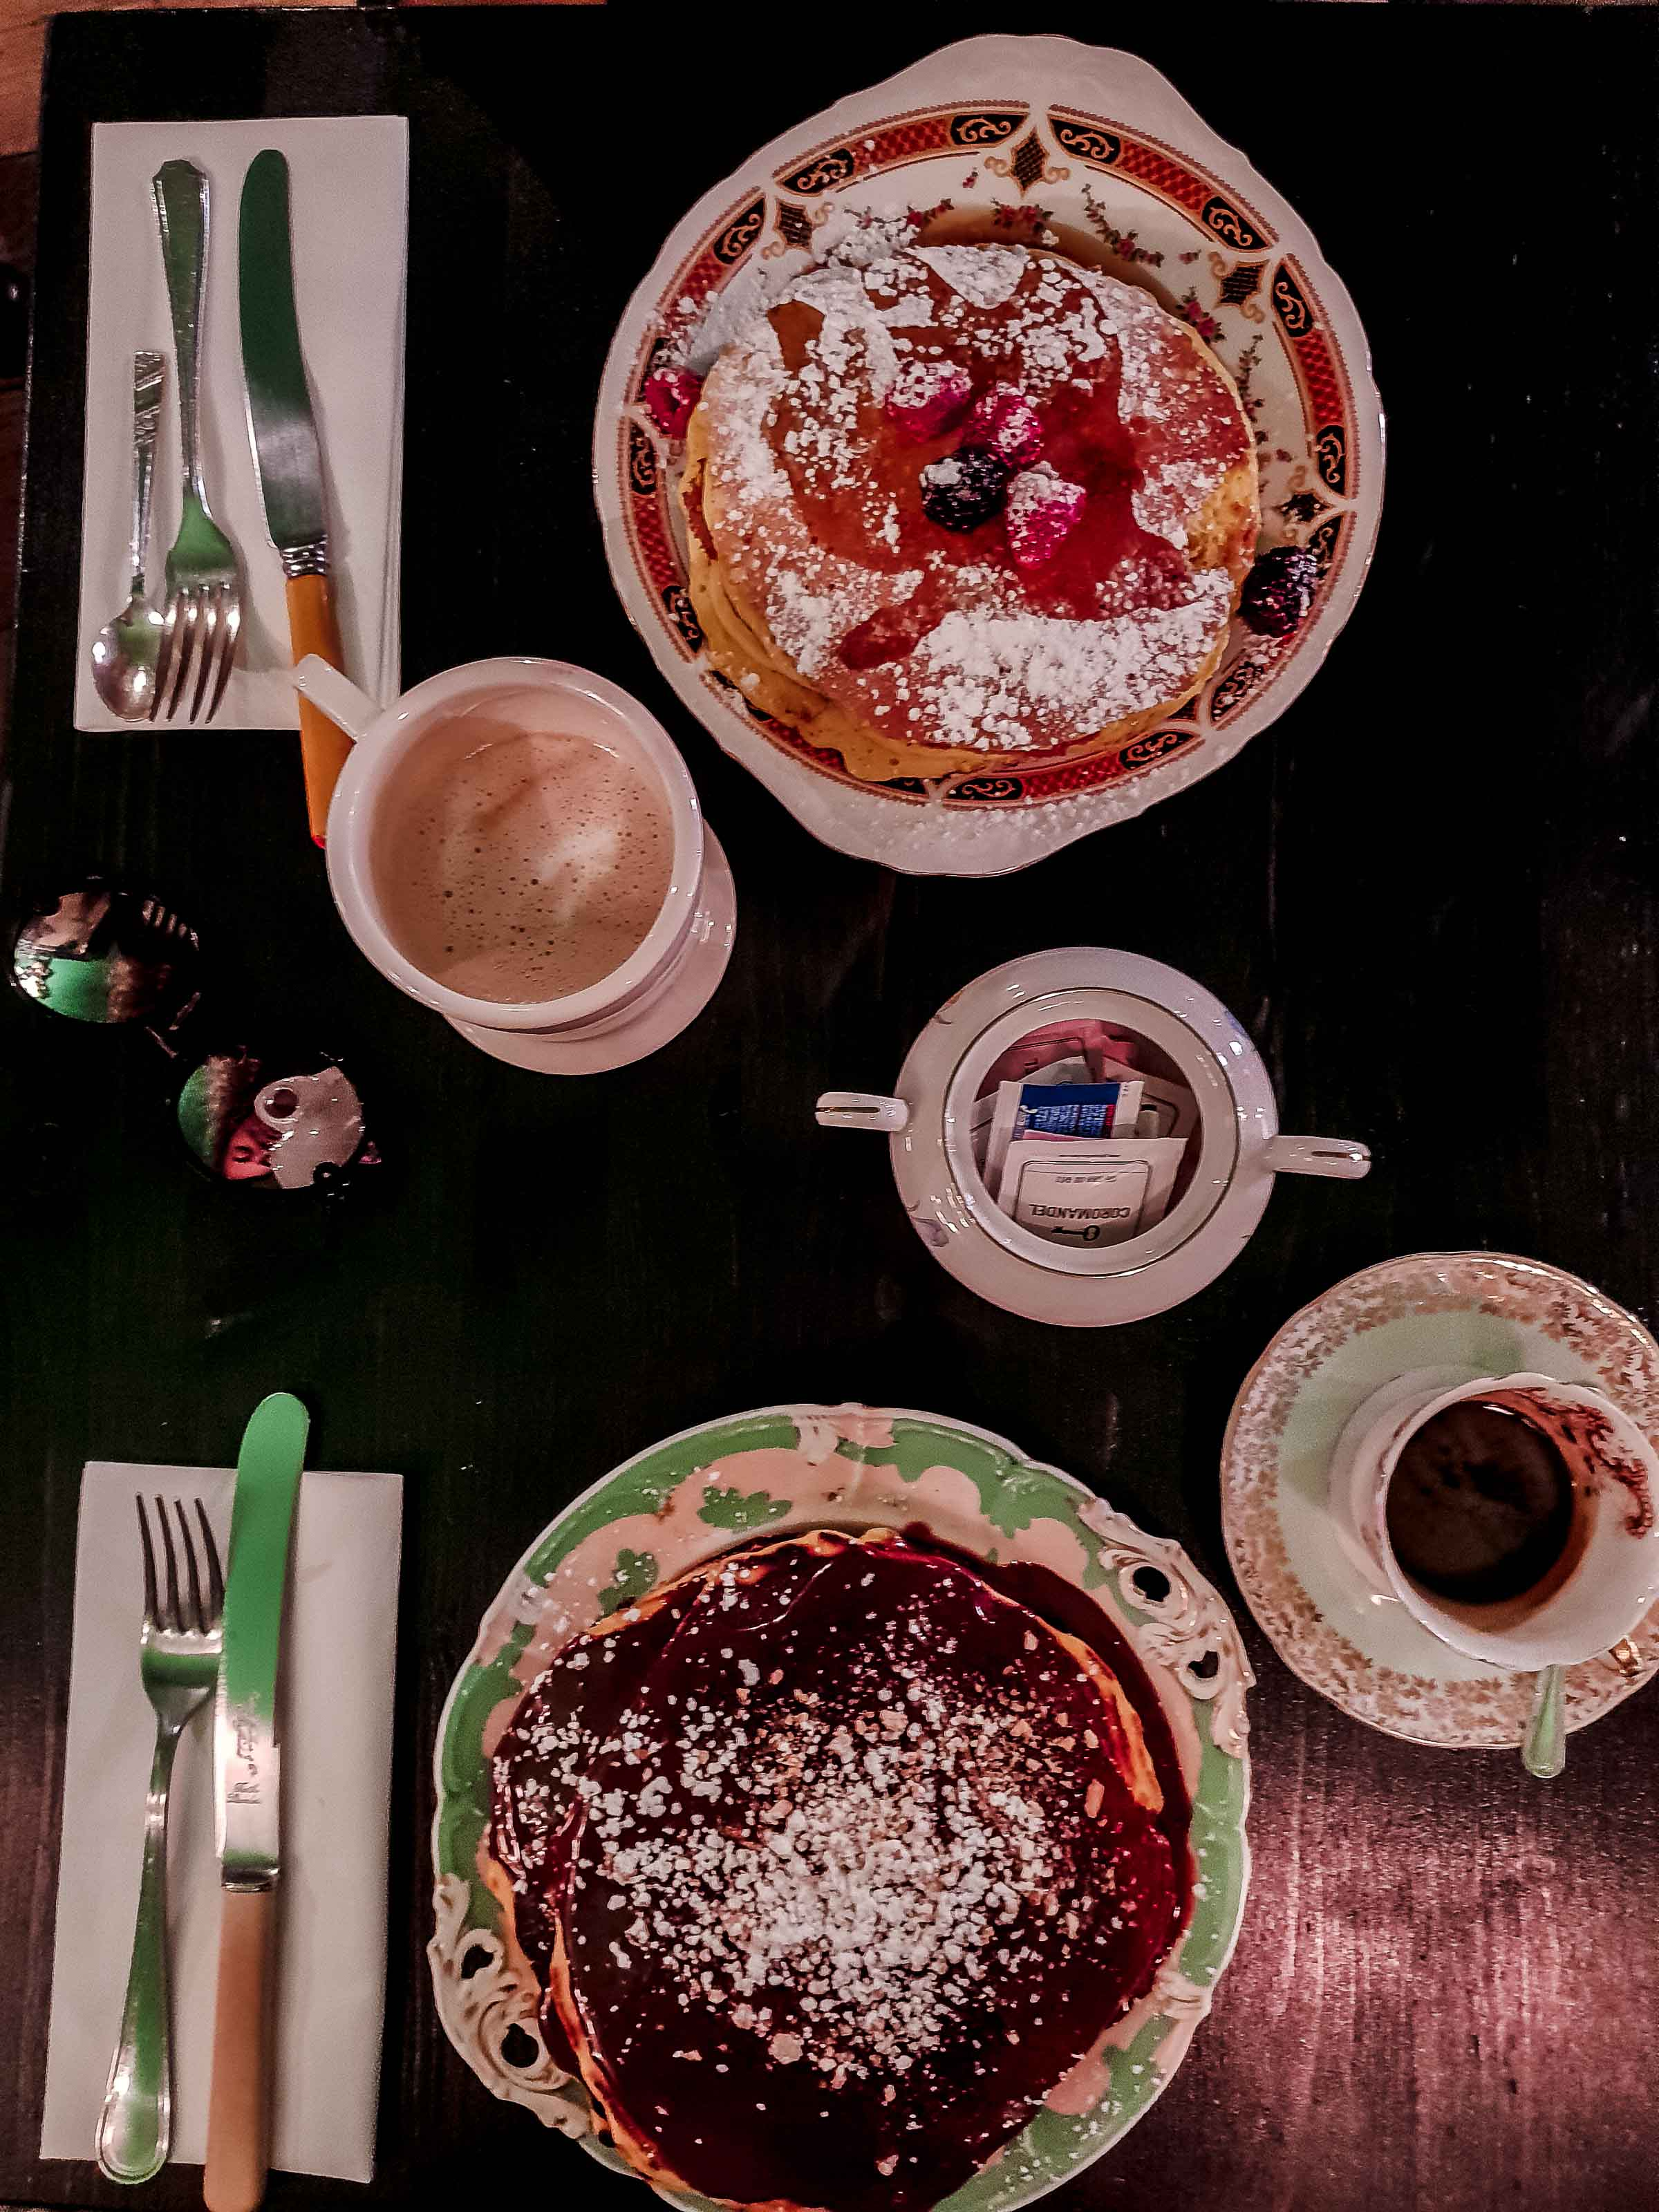 Where to have breakfast in Rome